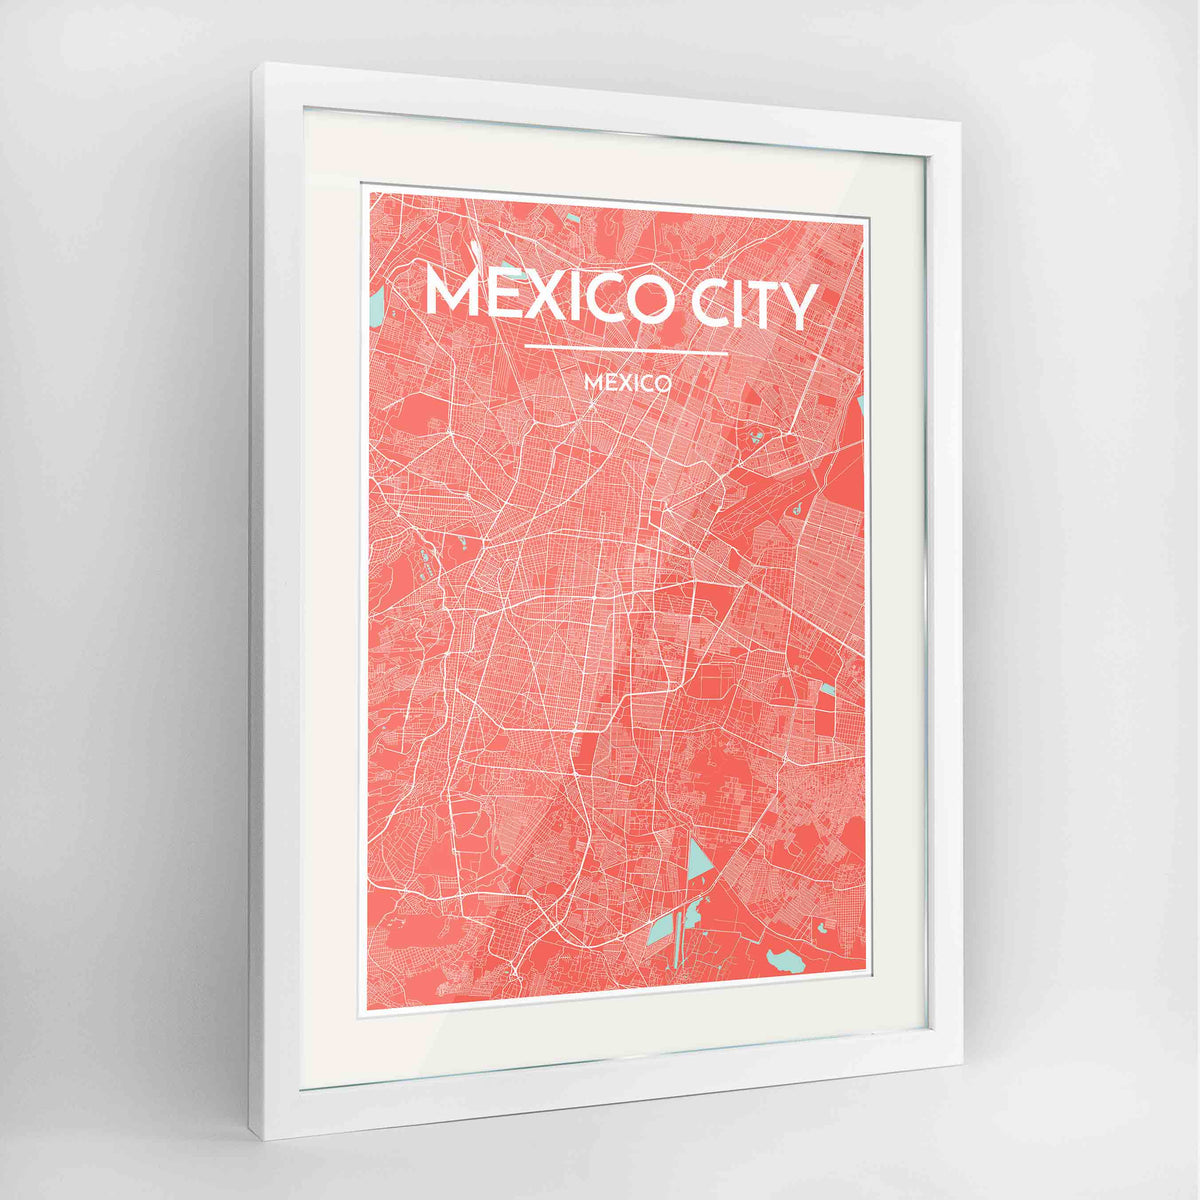 "Framed Mexico City Map Art Print 24x36"" Contemporary White frame Point Two Design Group"